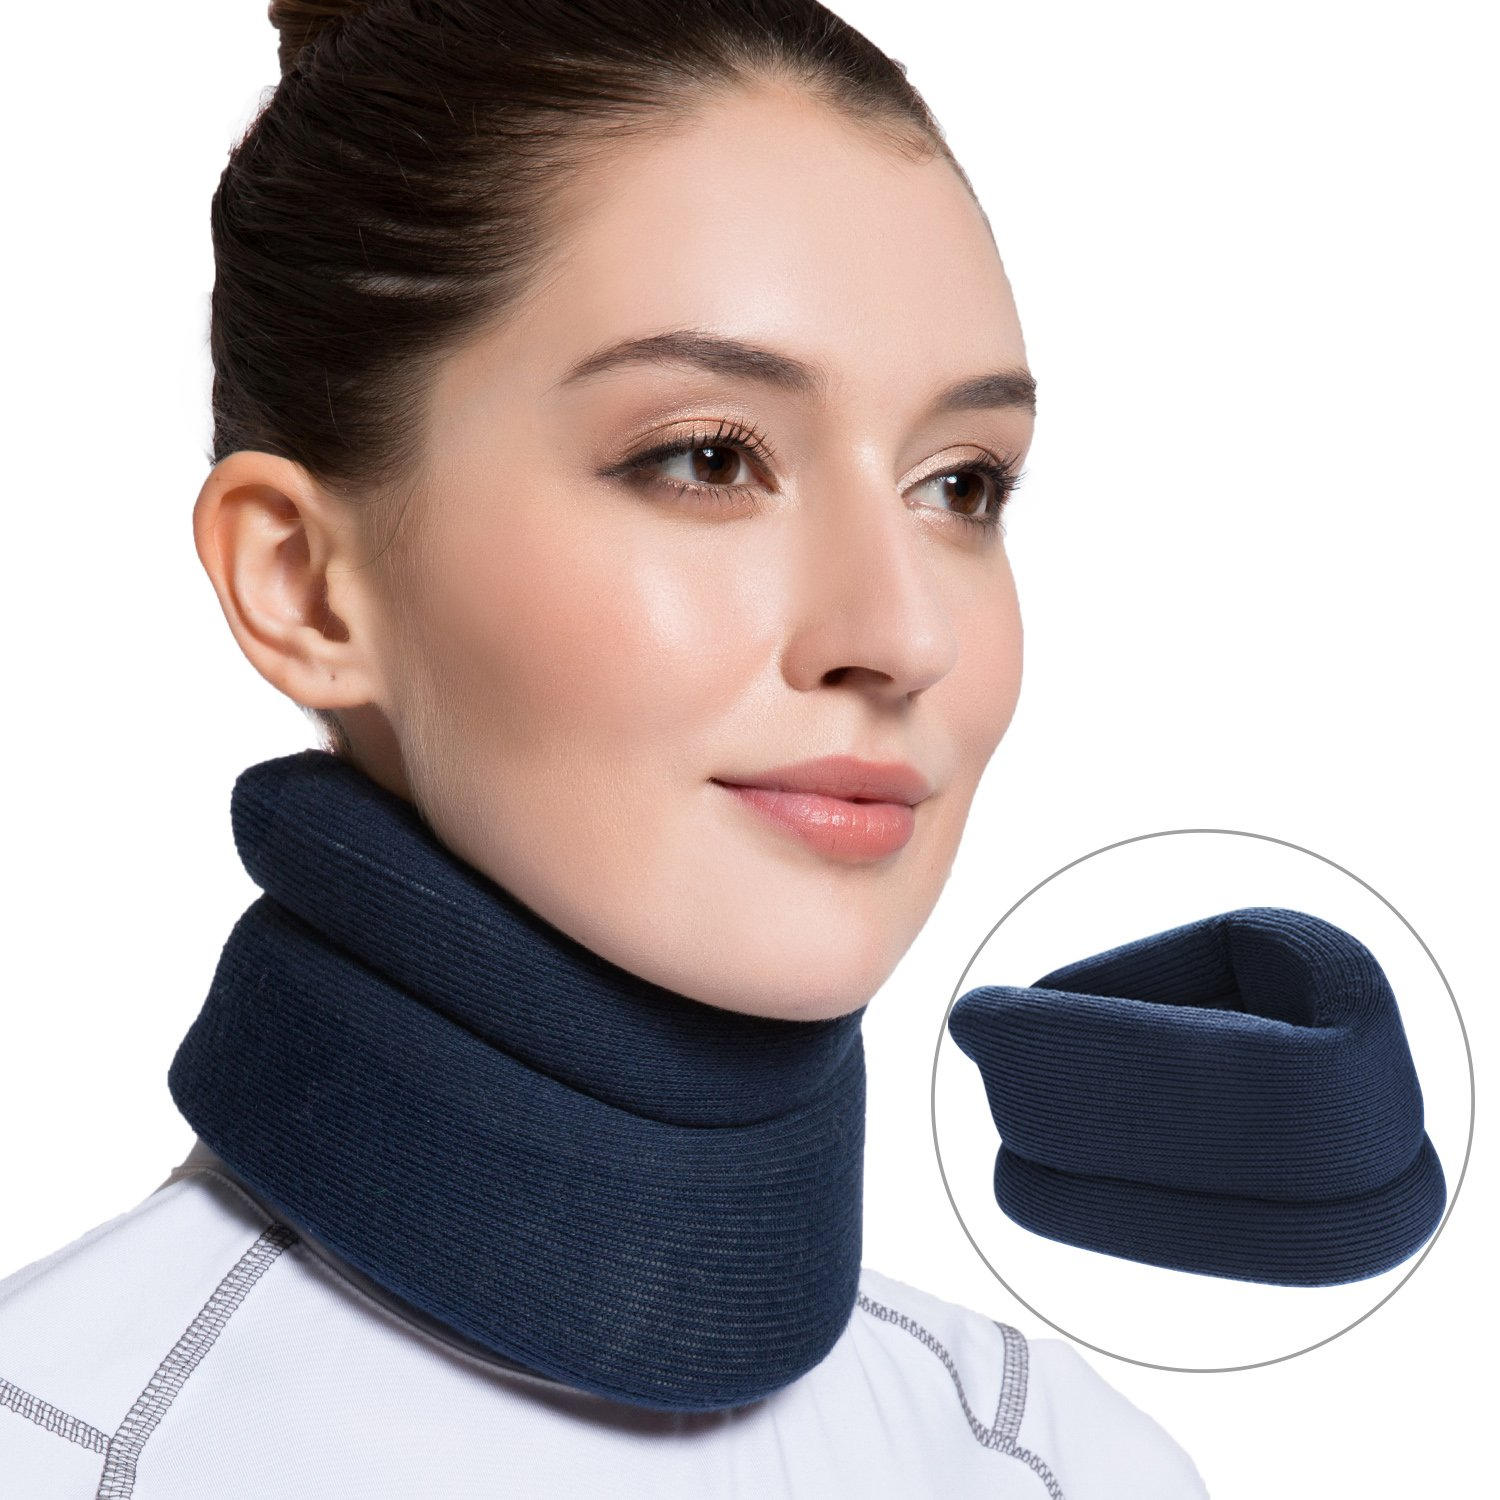 Velpeau Neck Brace -Foam Cervical Collar - Soft Neck Support Relieves Pain & Pressure in Spine - Wraps Aligns Stabilizes Vertebrae - Can Be Used During Sleep (Classic, Blue, Large)